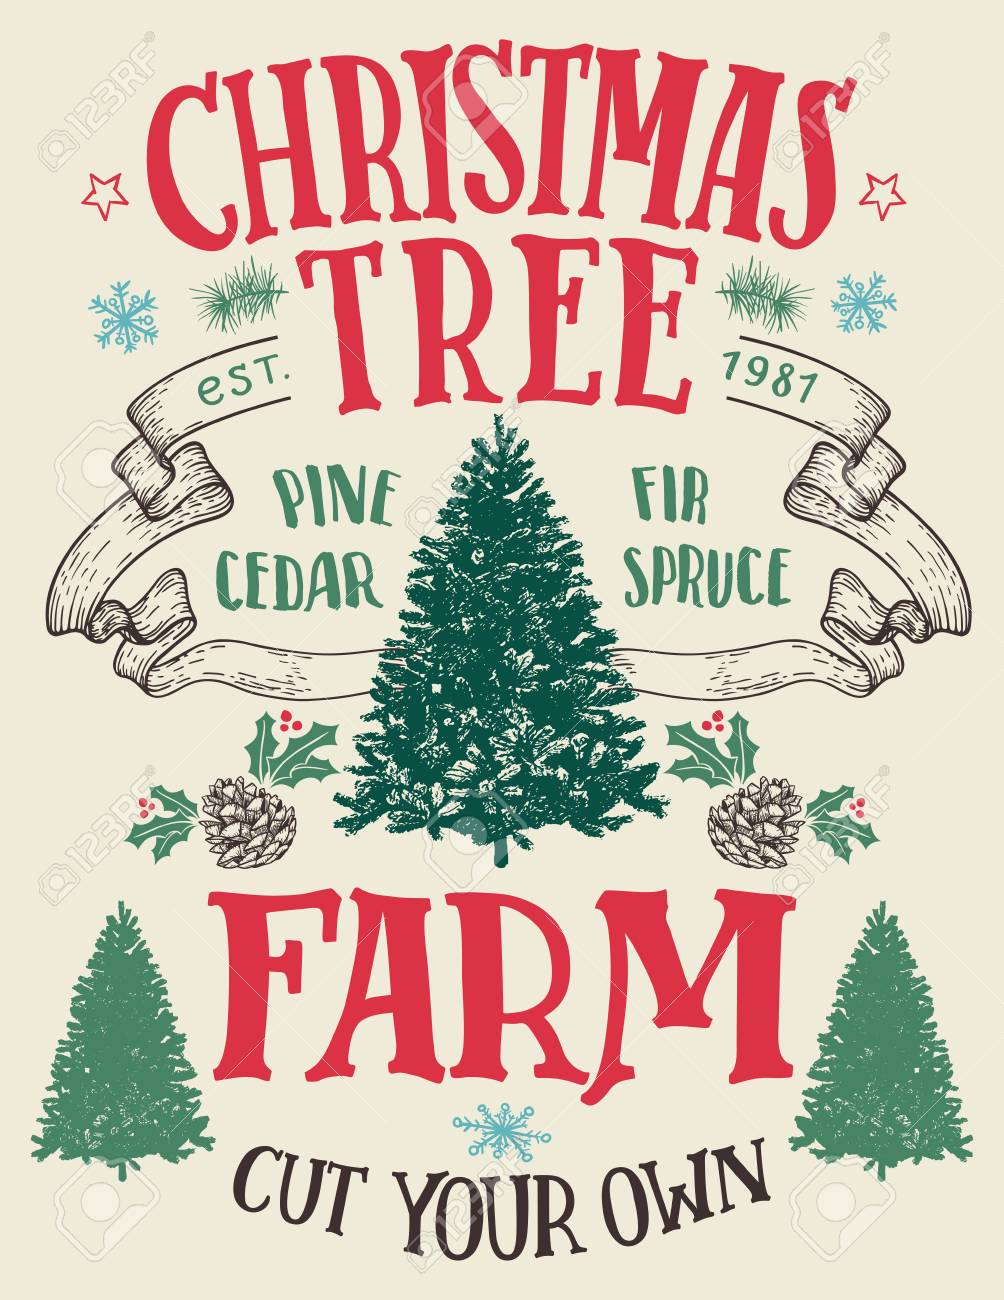 Cut Your Own Christmas Tree Near Me.Christmas Tree Farm Cut Your Own Hand Lettering Vintage Sign